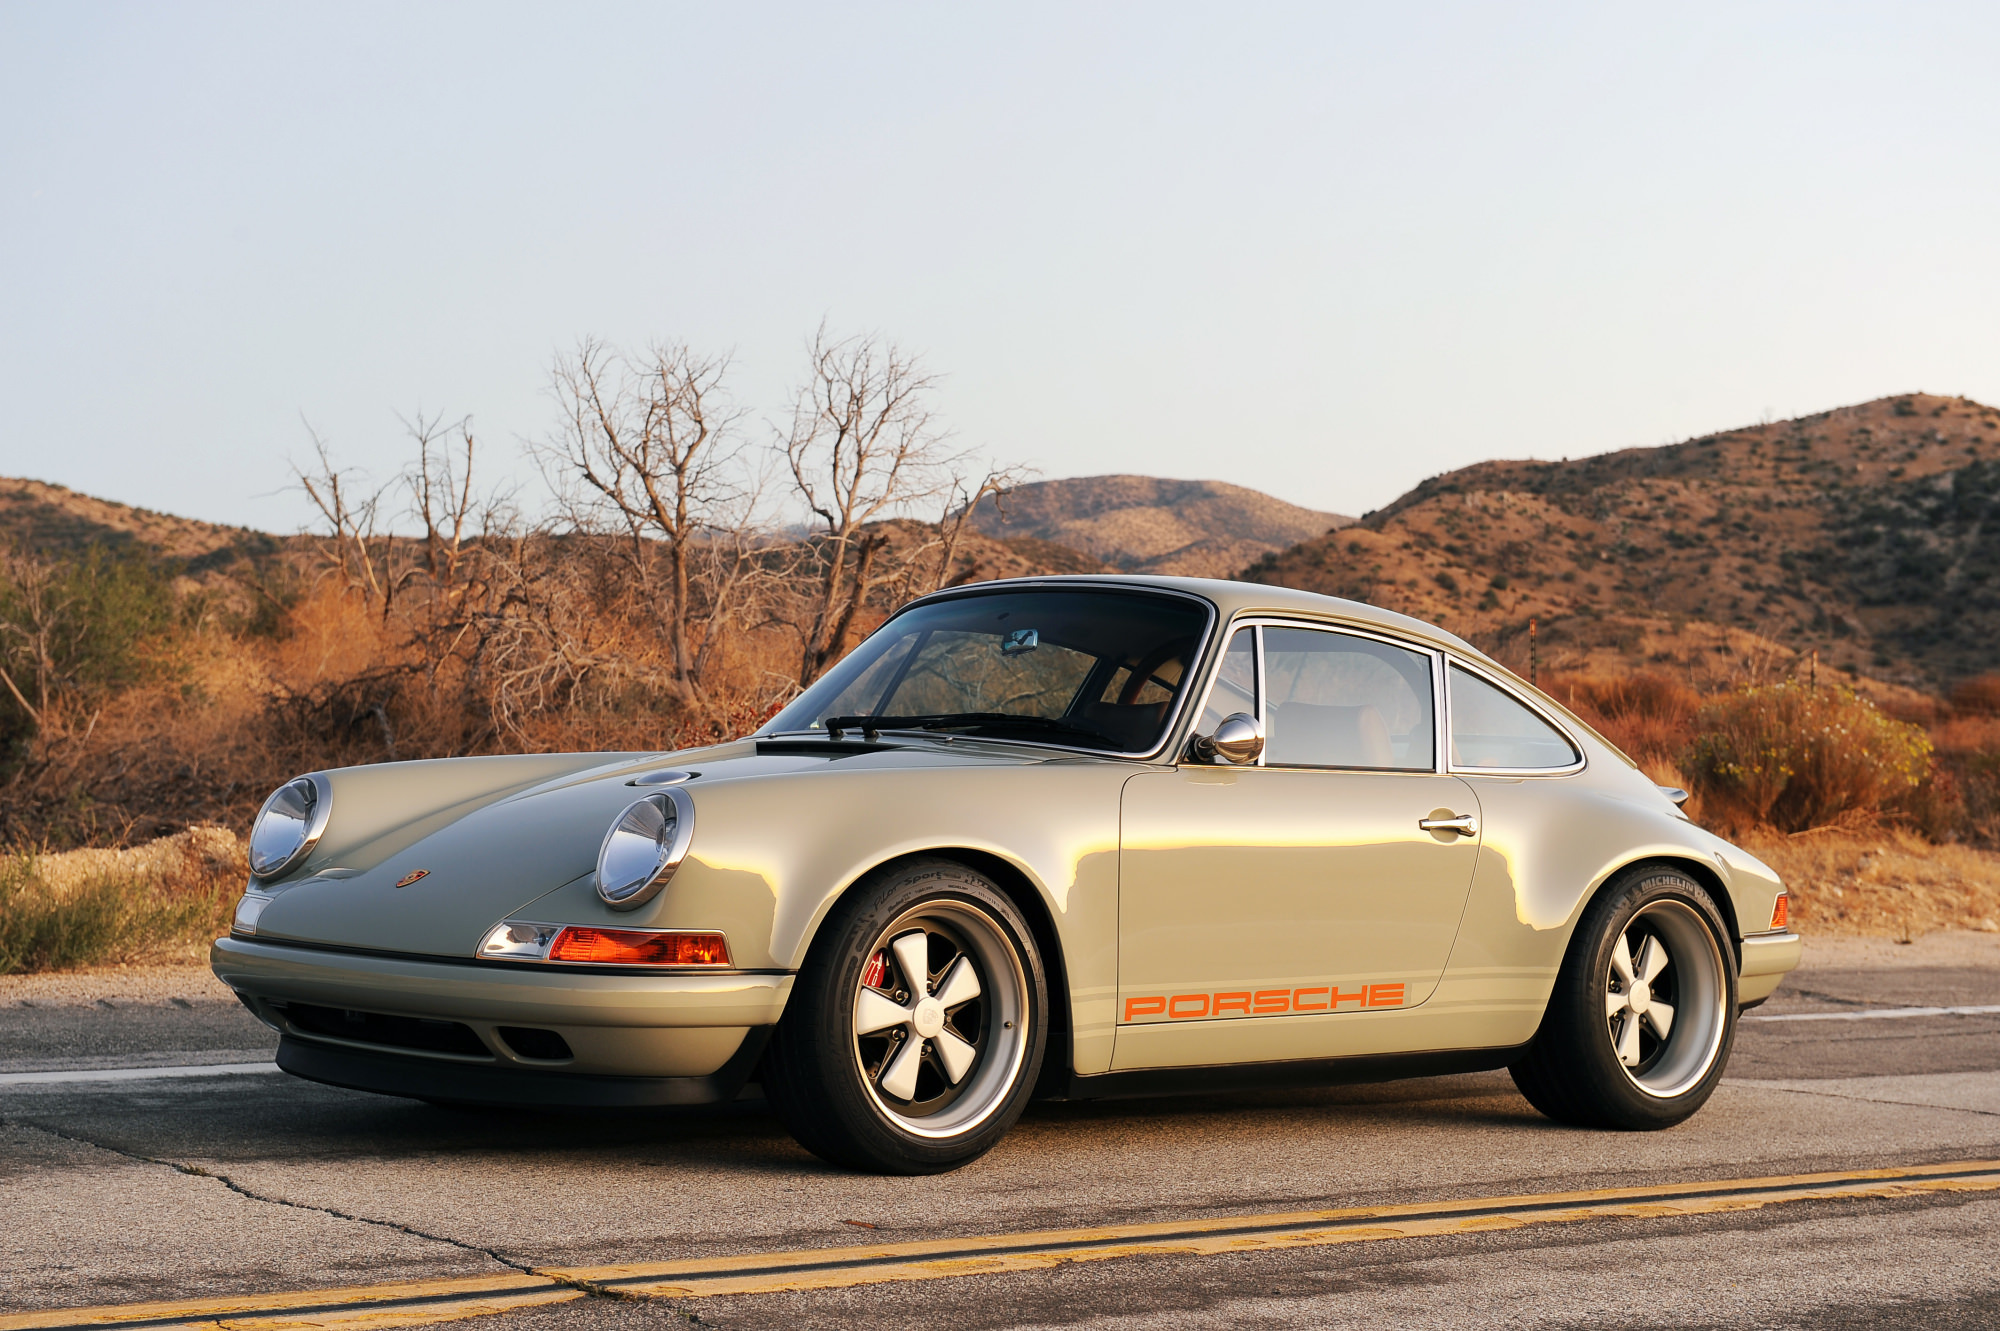 Porsche 911 X Singer Vehicle Design